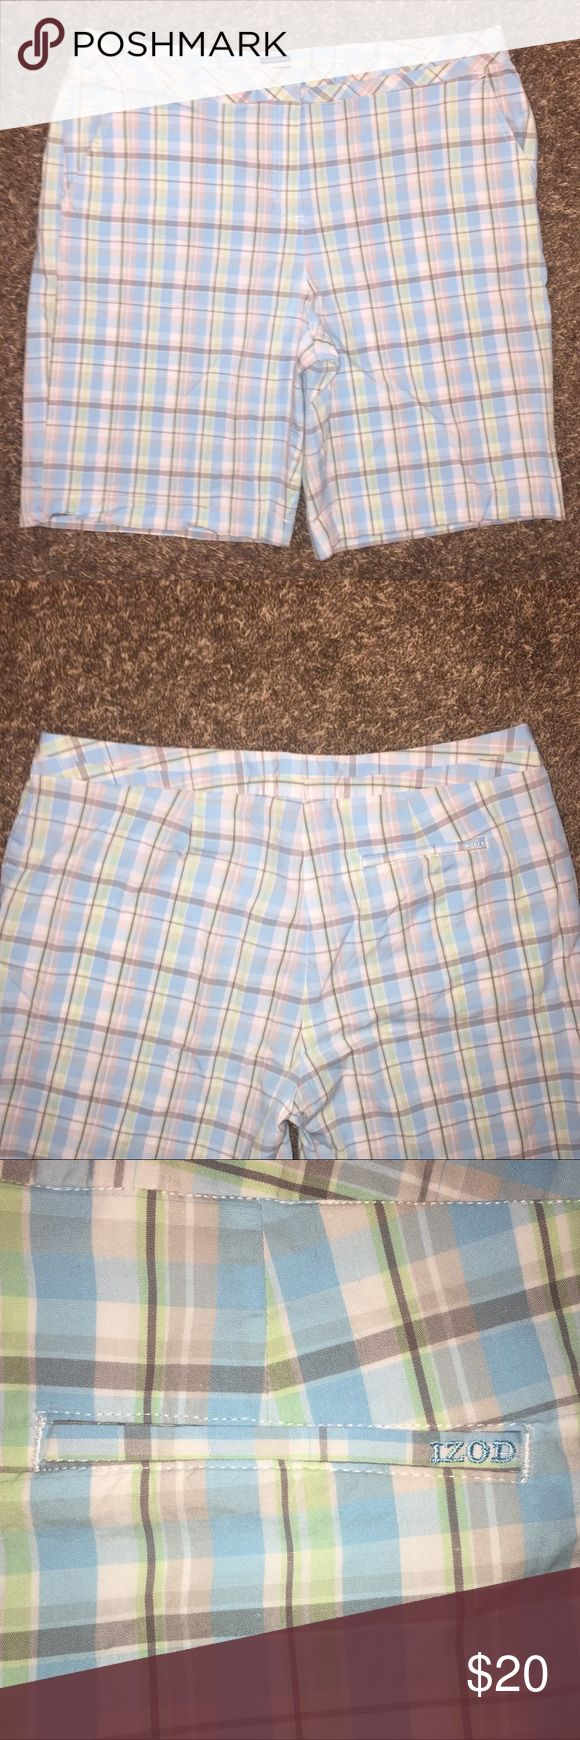 Women's Izod size 14 gold shorts Excellent condition.  No rips or stains.  Pet and smoke free home. Izod Shorts